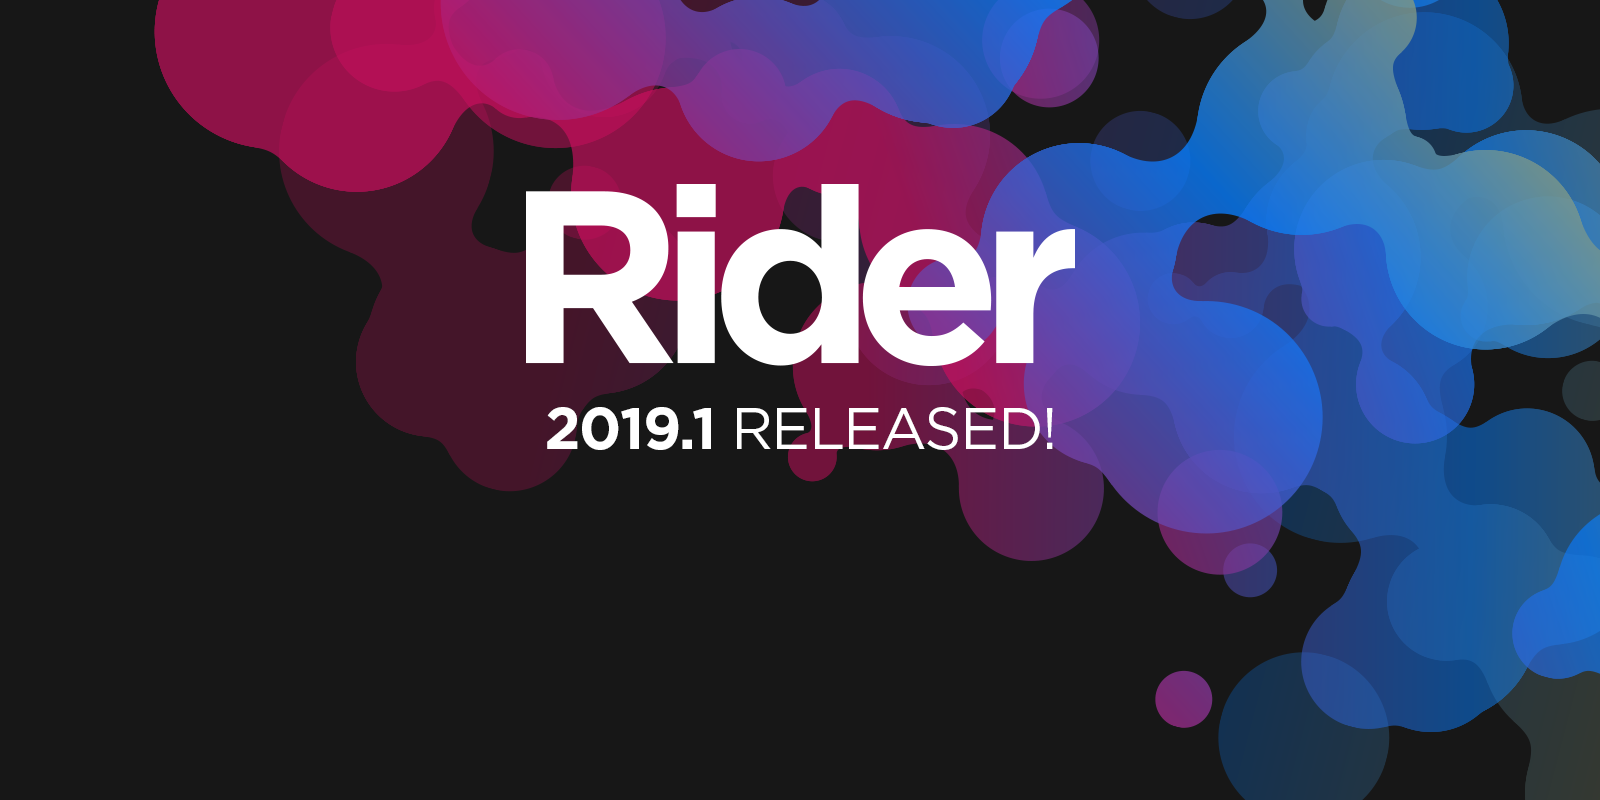 Rider 2019.1 has arrived